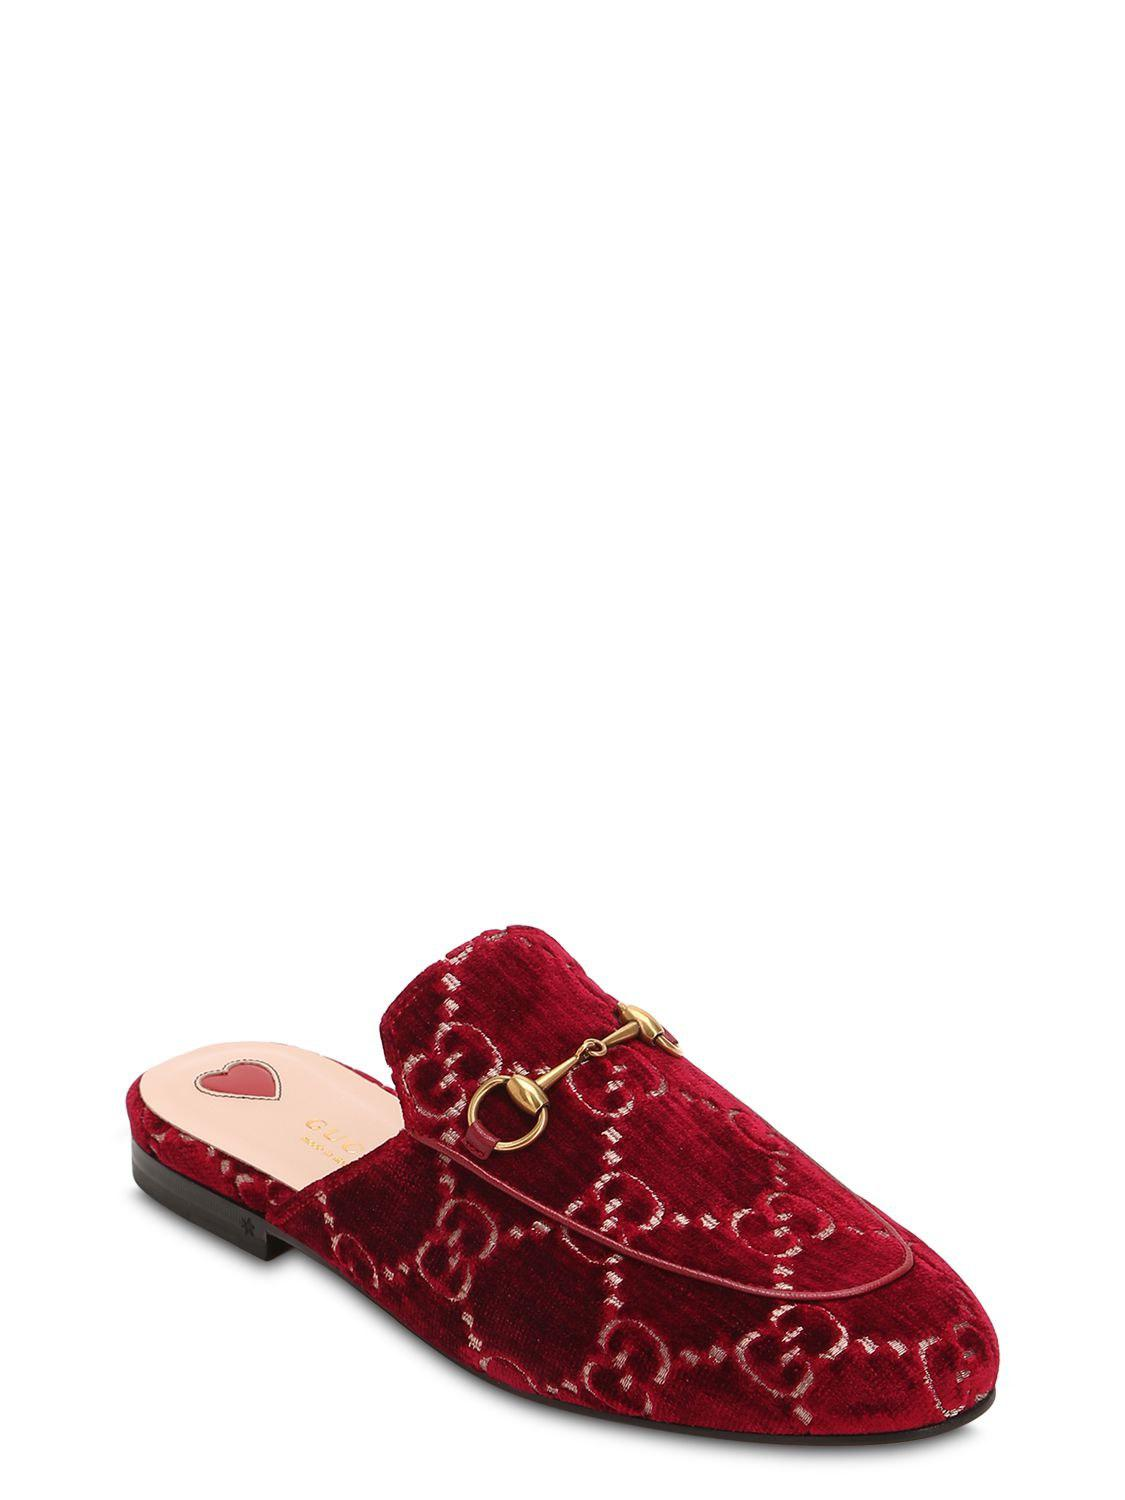 2d215295924 Lyst - Gucci 10mm Princetown Gg Supreme Velvet Mules in Red